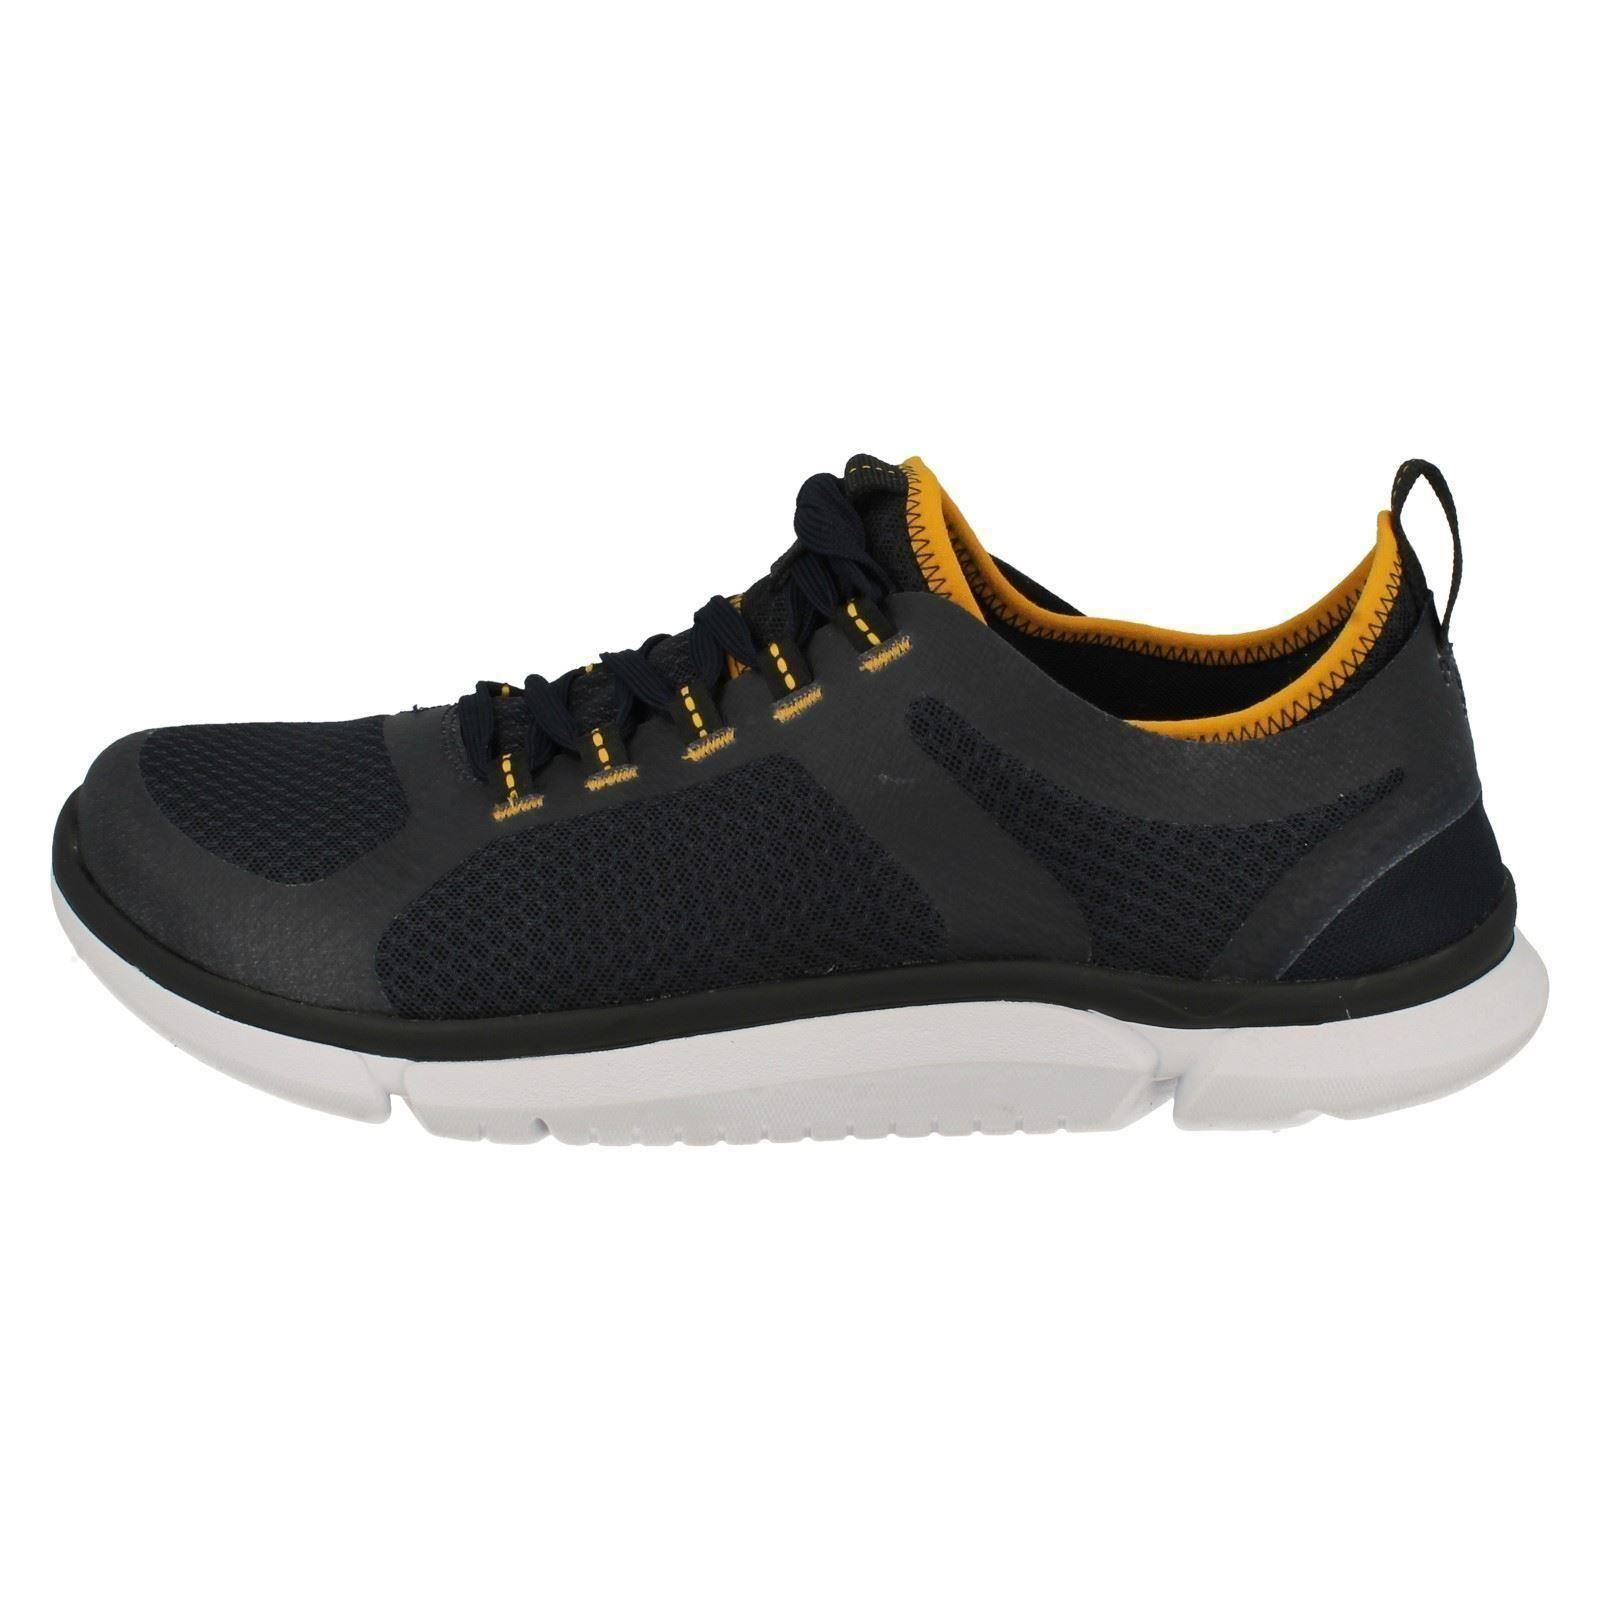 Men's Clarks Casual Lace Up Lightweight Trainers The Style -  Triken Active